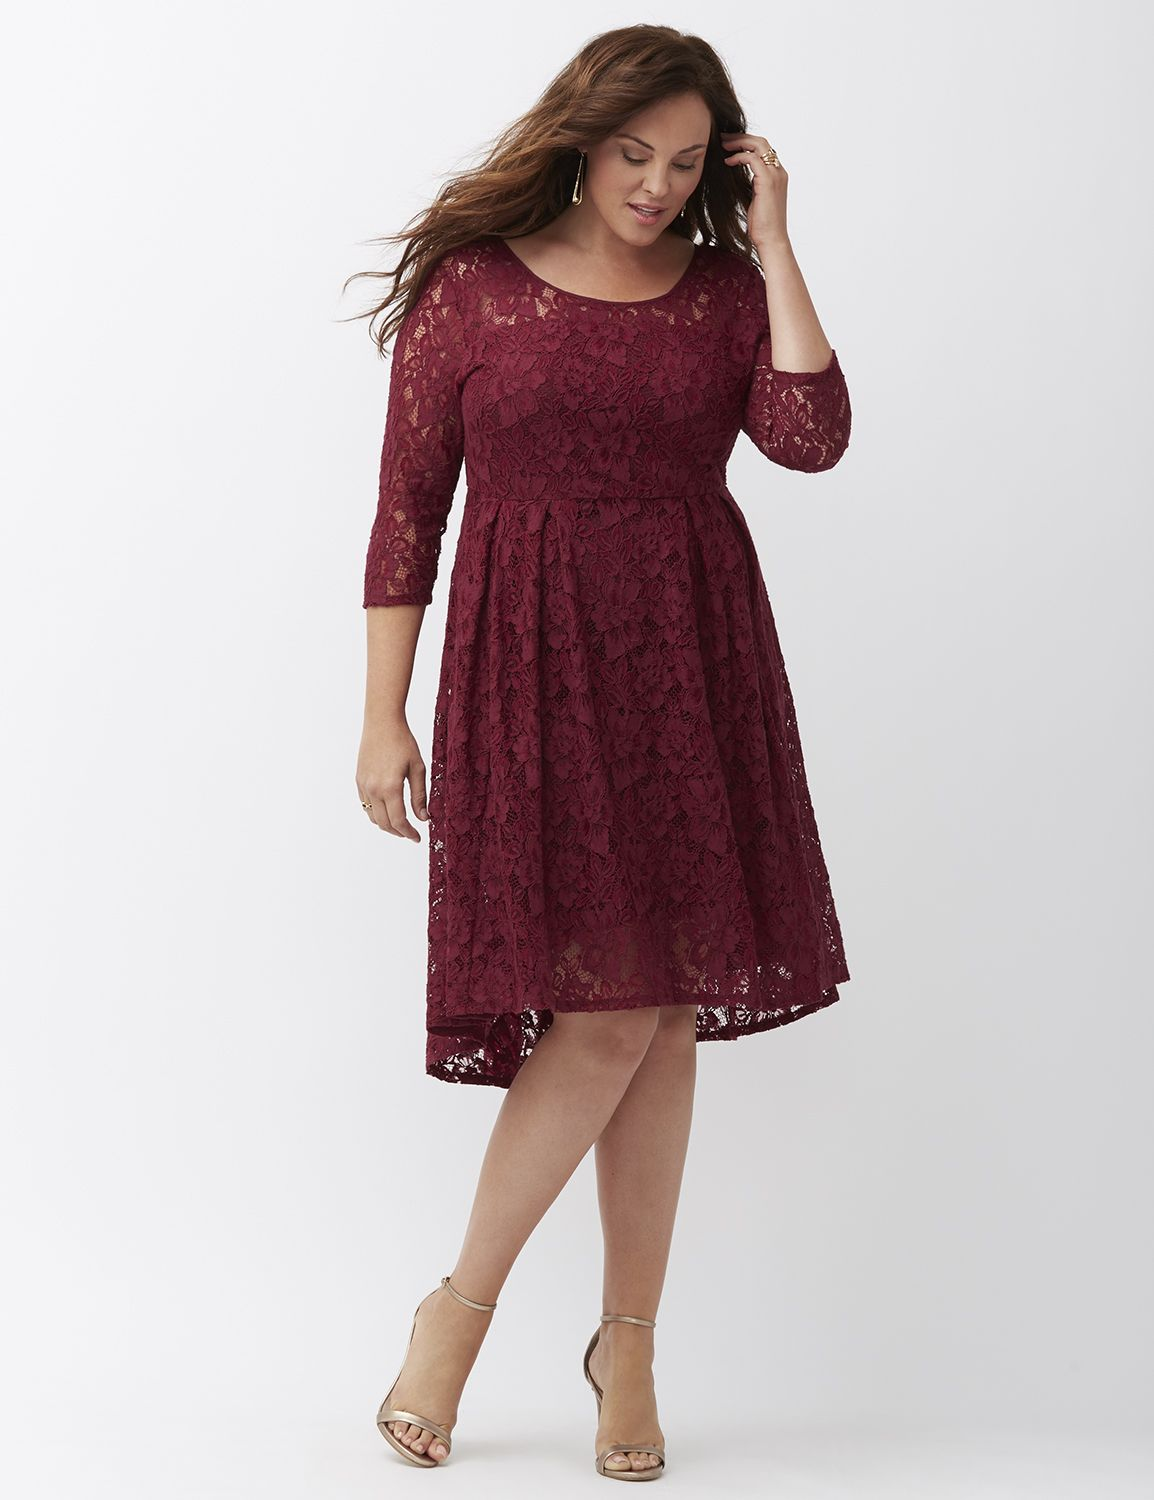 Plus Size Dresses & Skirts for Women Size 14 28